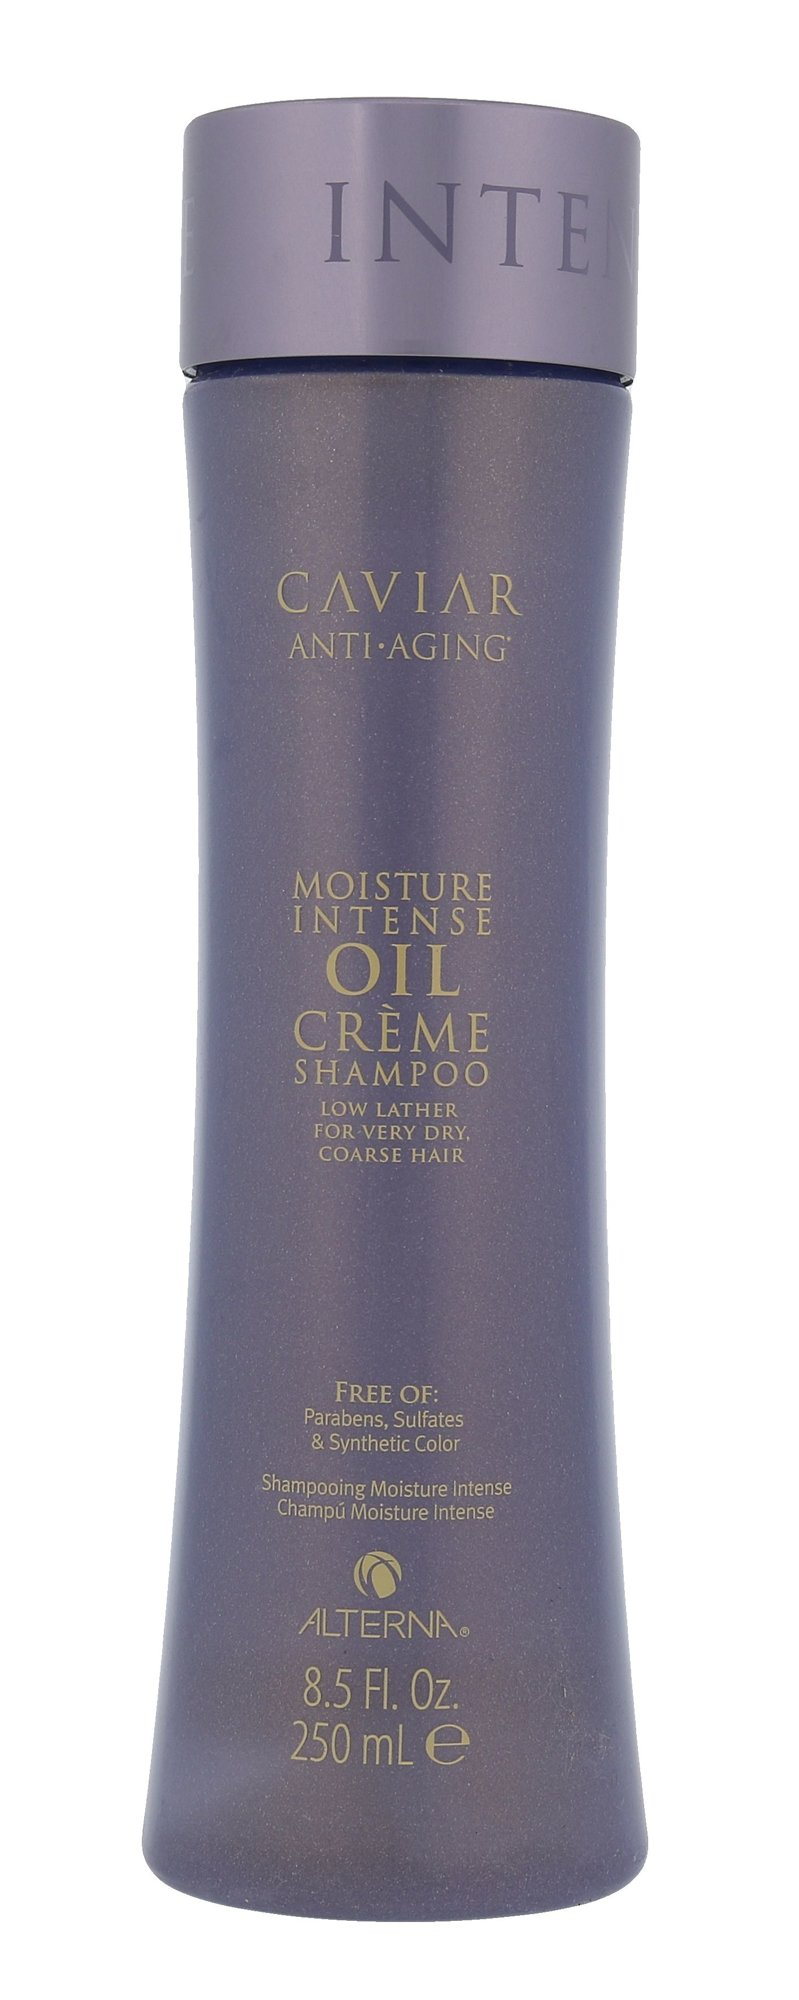 Alterna Caviar Anti-Aging Cosmetic 250ml  Moisture Intense Oil Creme